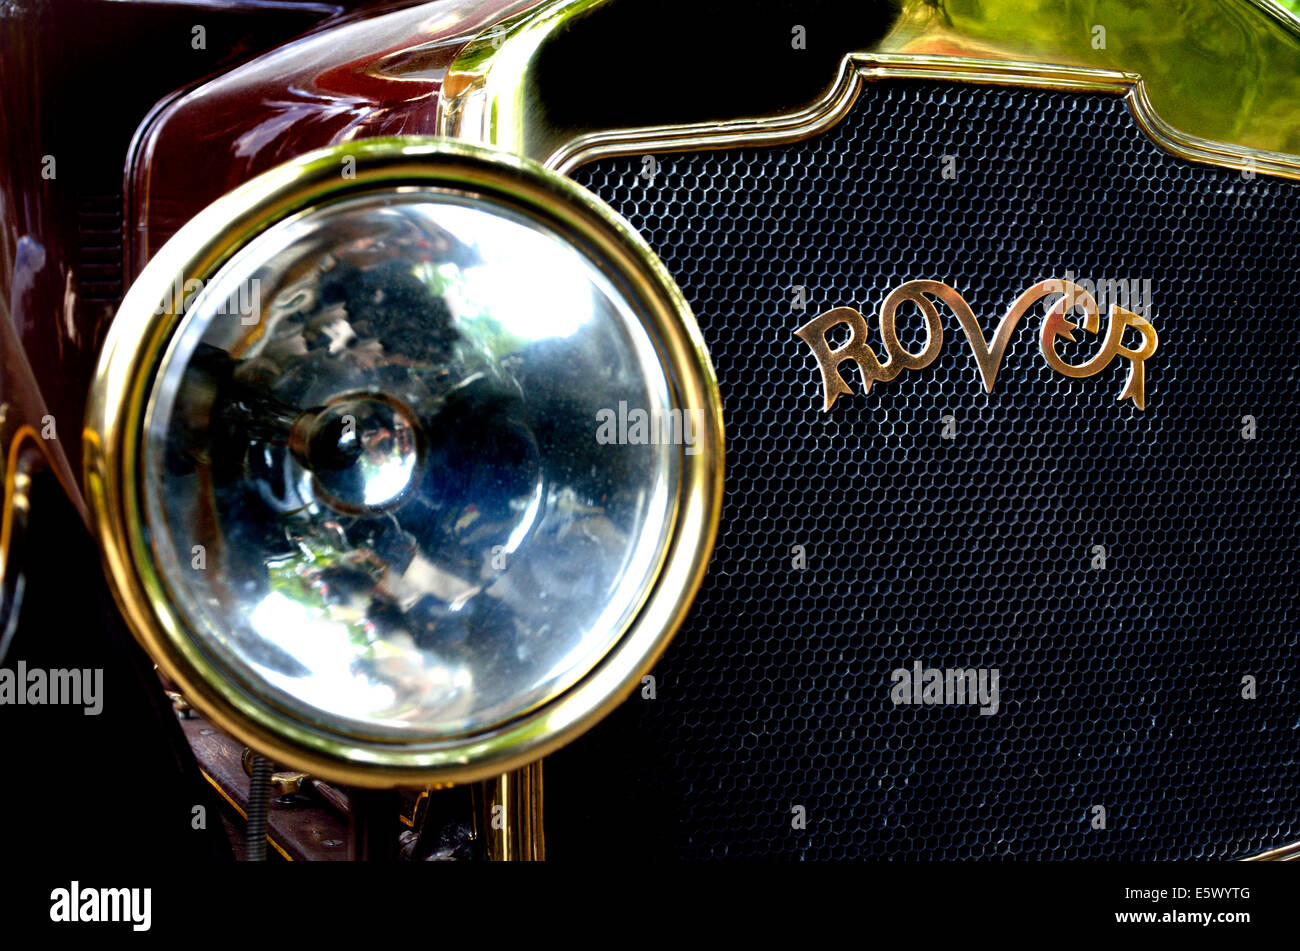 1915 Rover 12hp (BE 3055) detail of radiator grille and headlamp - Stock Image